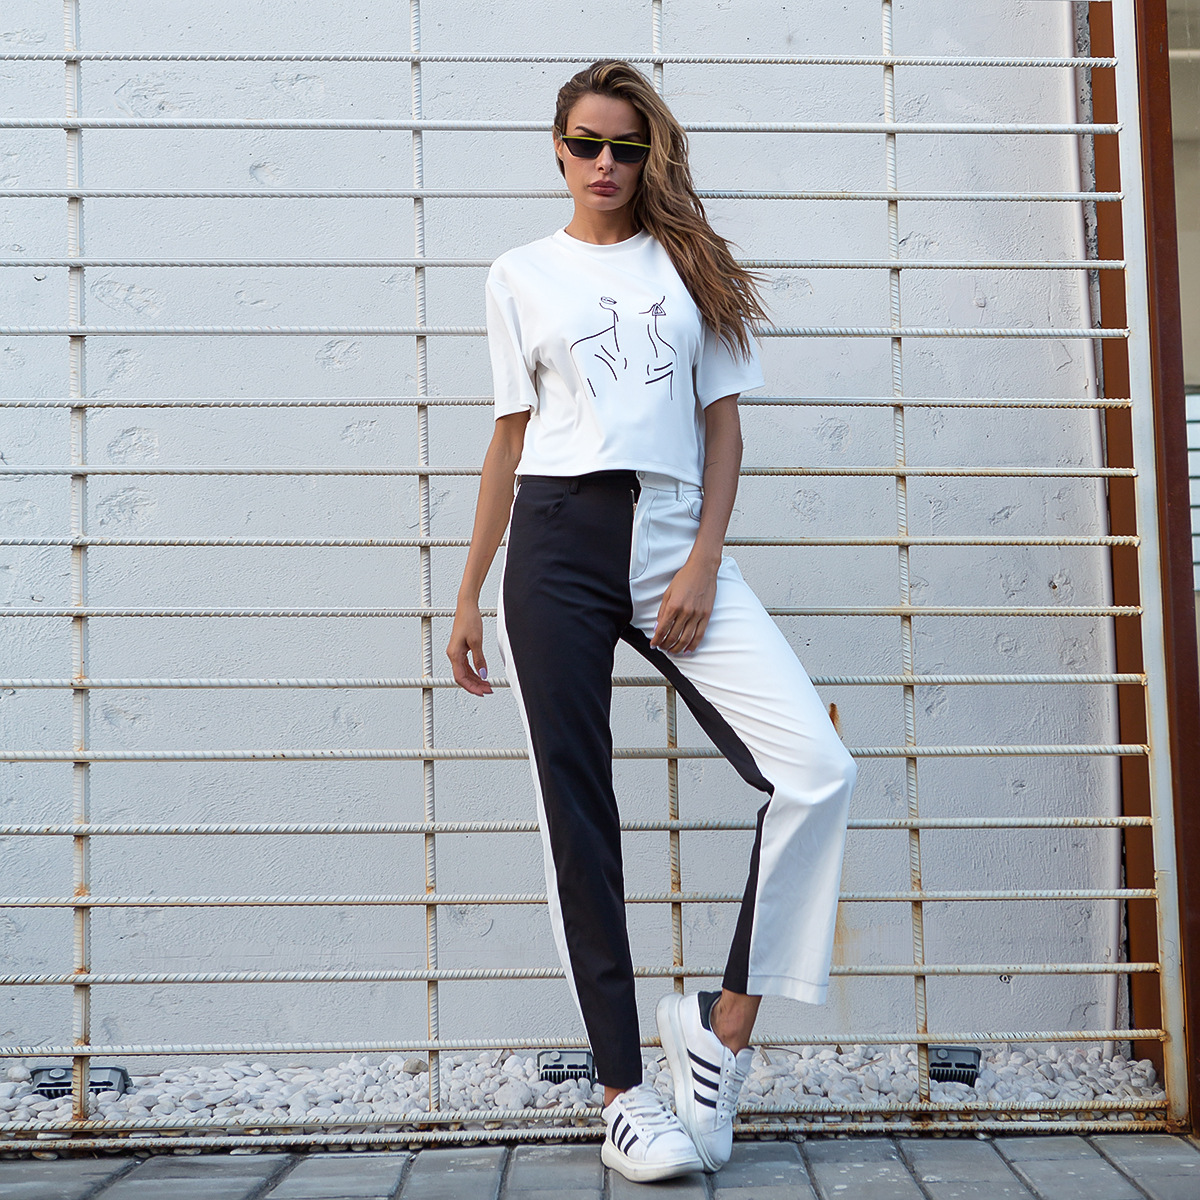 HOUZHOU Casual Pants Women Black And White Panelled Trousers Women High Waist Pants Streetwear Patchwork Cargo Pants Women